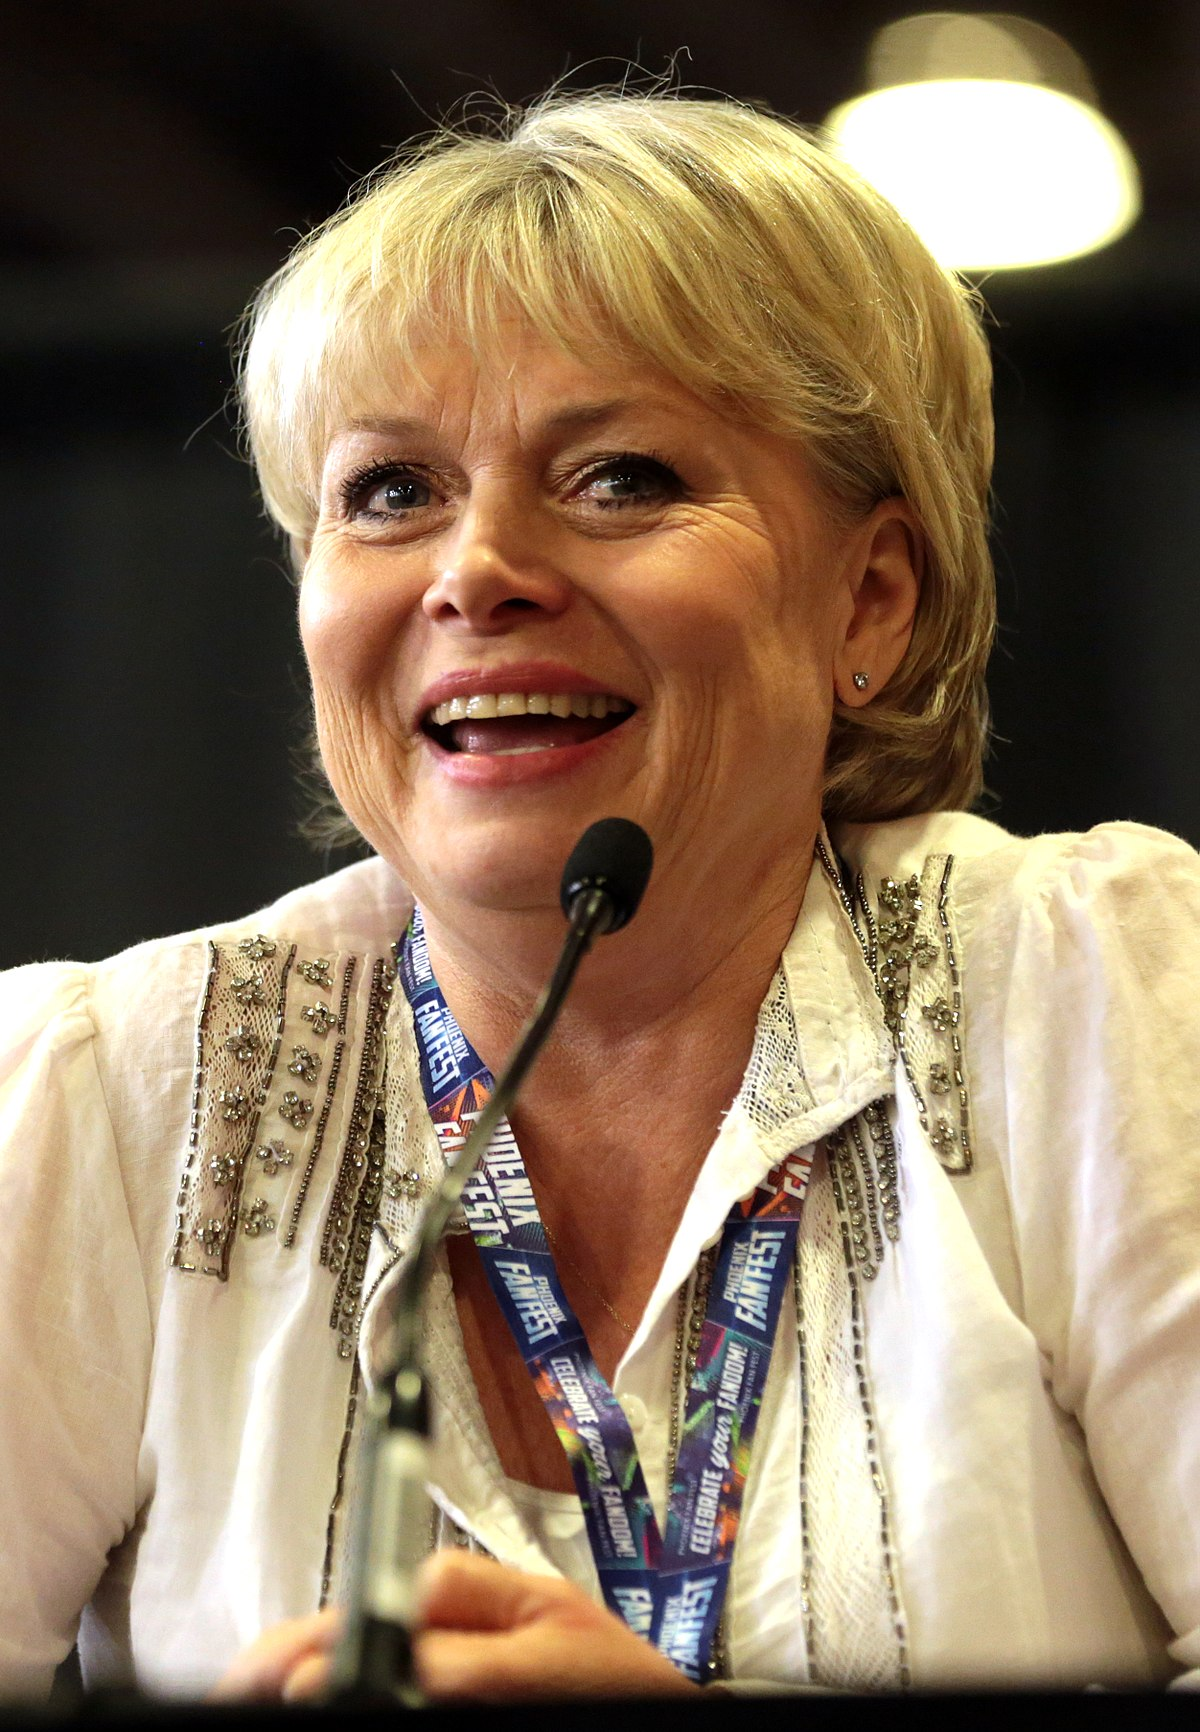 Julie Dawn Cole (born 1957)